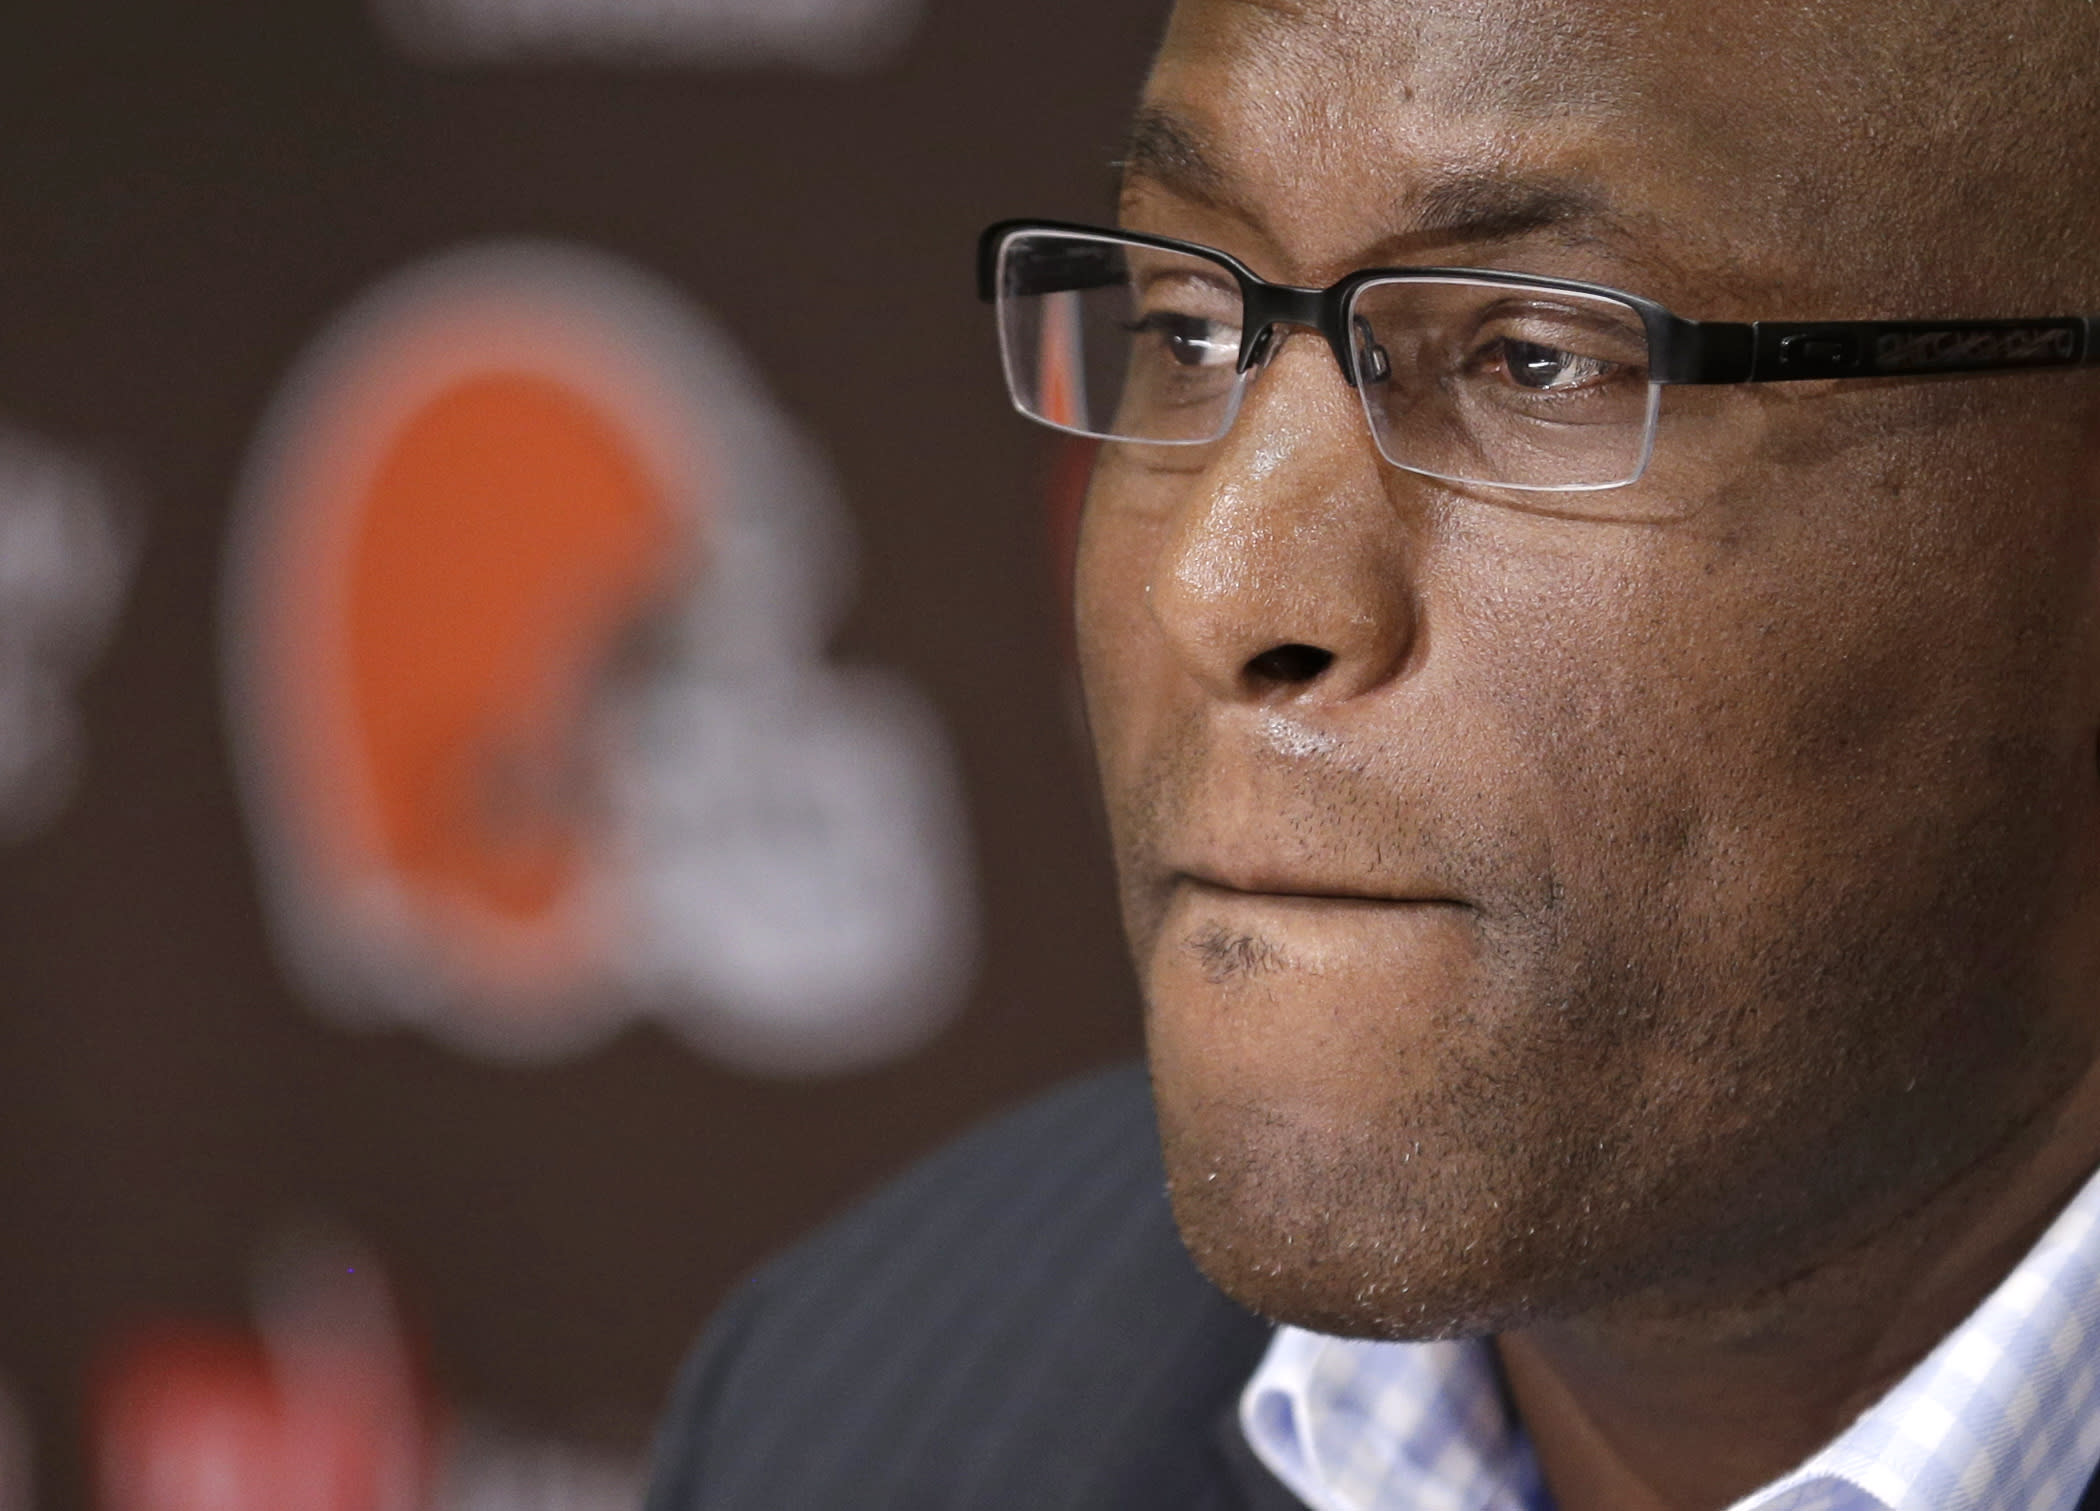 NFL suspends Browns GM for texting, team holds onto picks